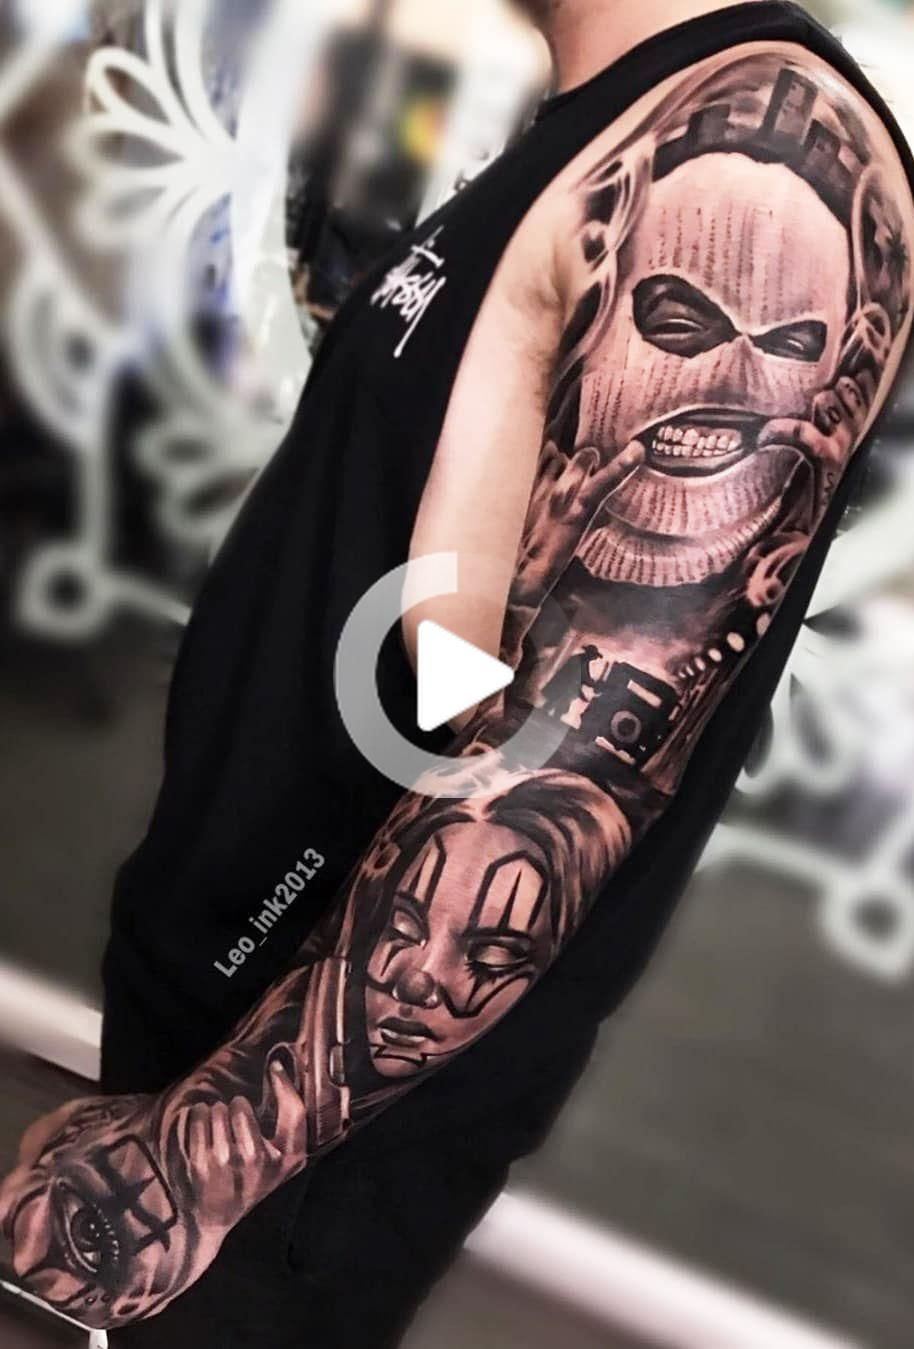 80 Male Closed Arm Tattoos For Inspiration Toptatuagens In 2020 Gangster Tattoos Gangsta Tattoos Hand Tattoos For Guys